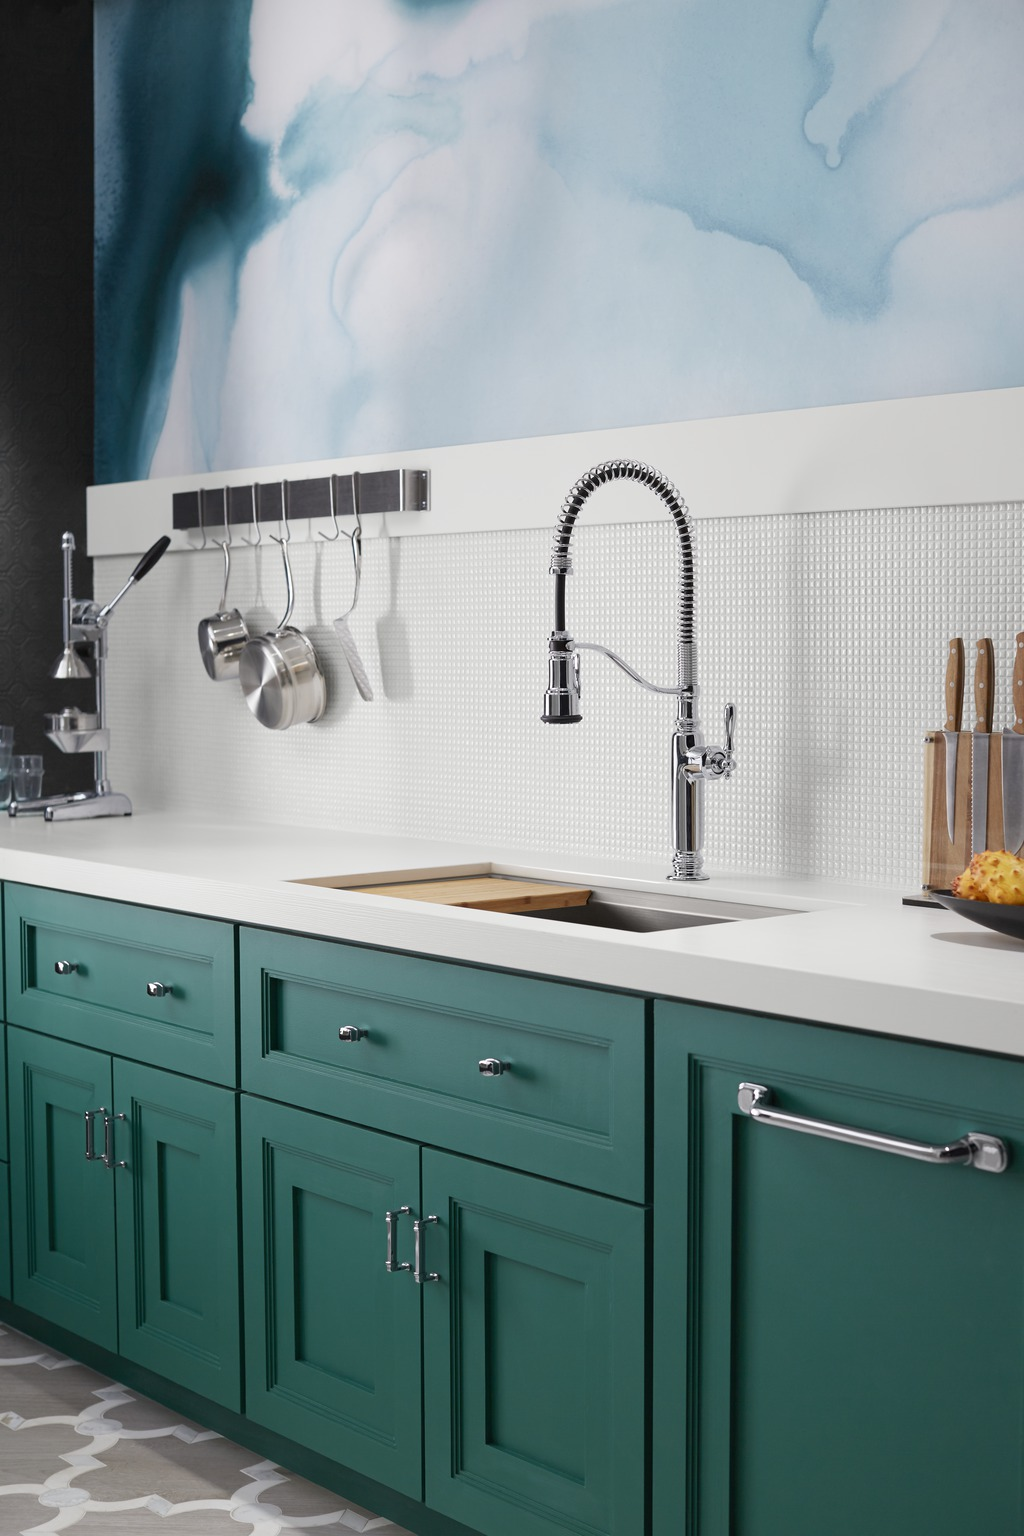 Tournant Kitchen Faucet | For Residential Pros